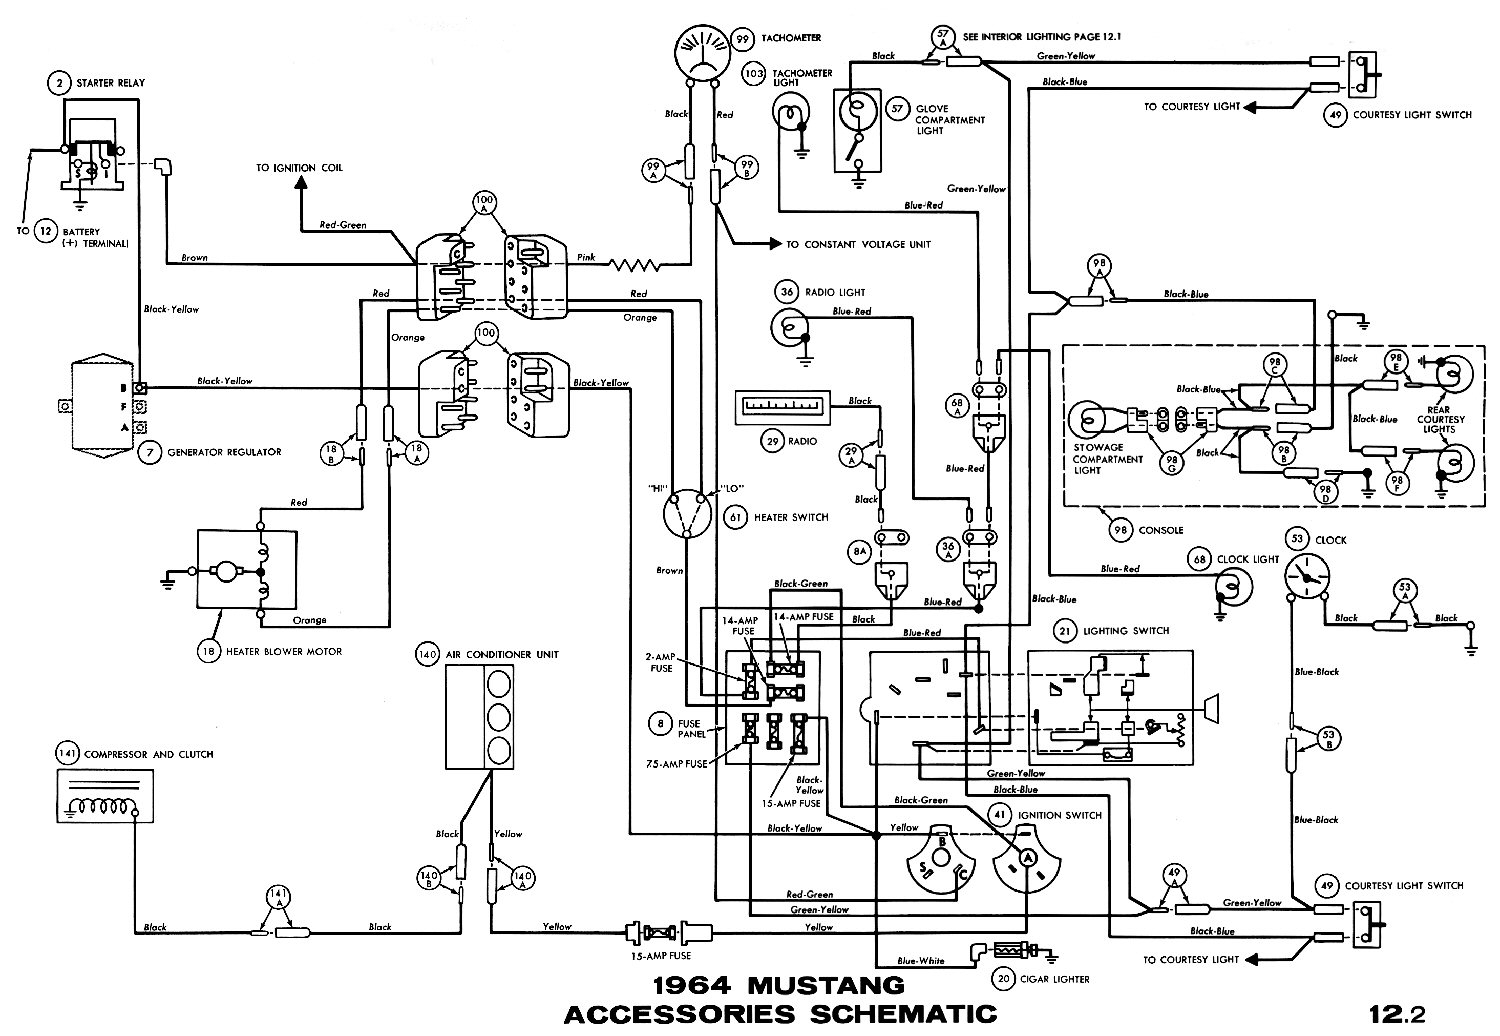 2000 Ford Mustang Wiring Diagram Gallery